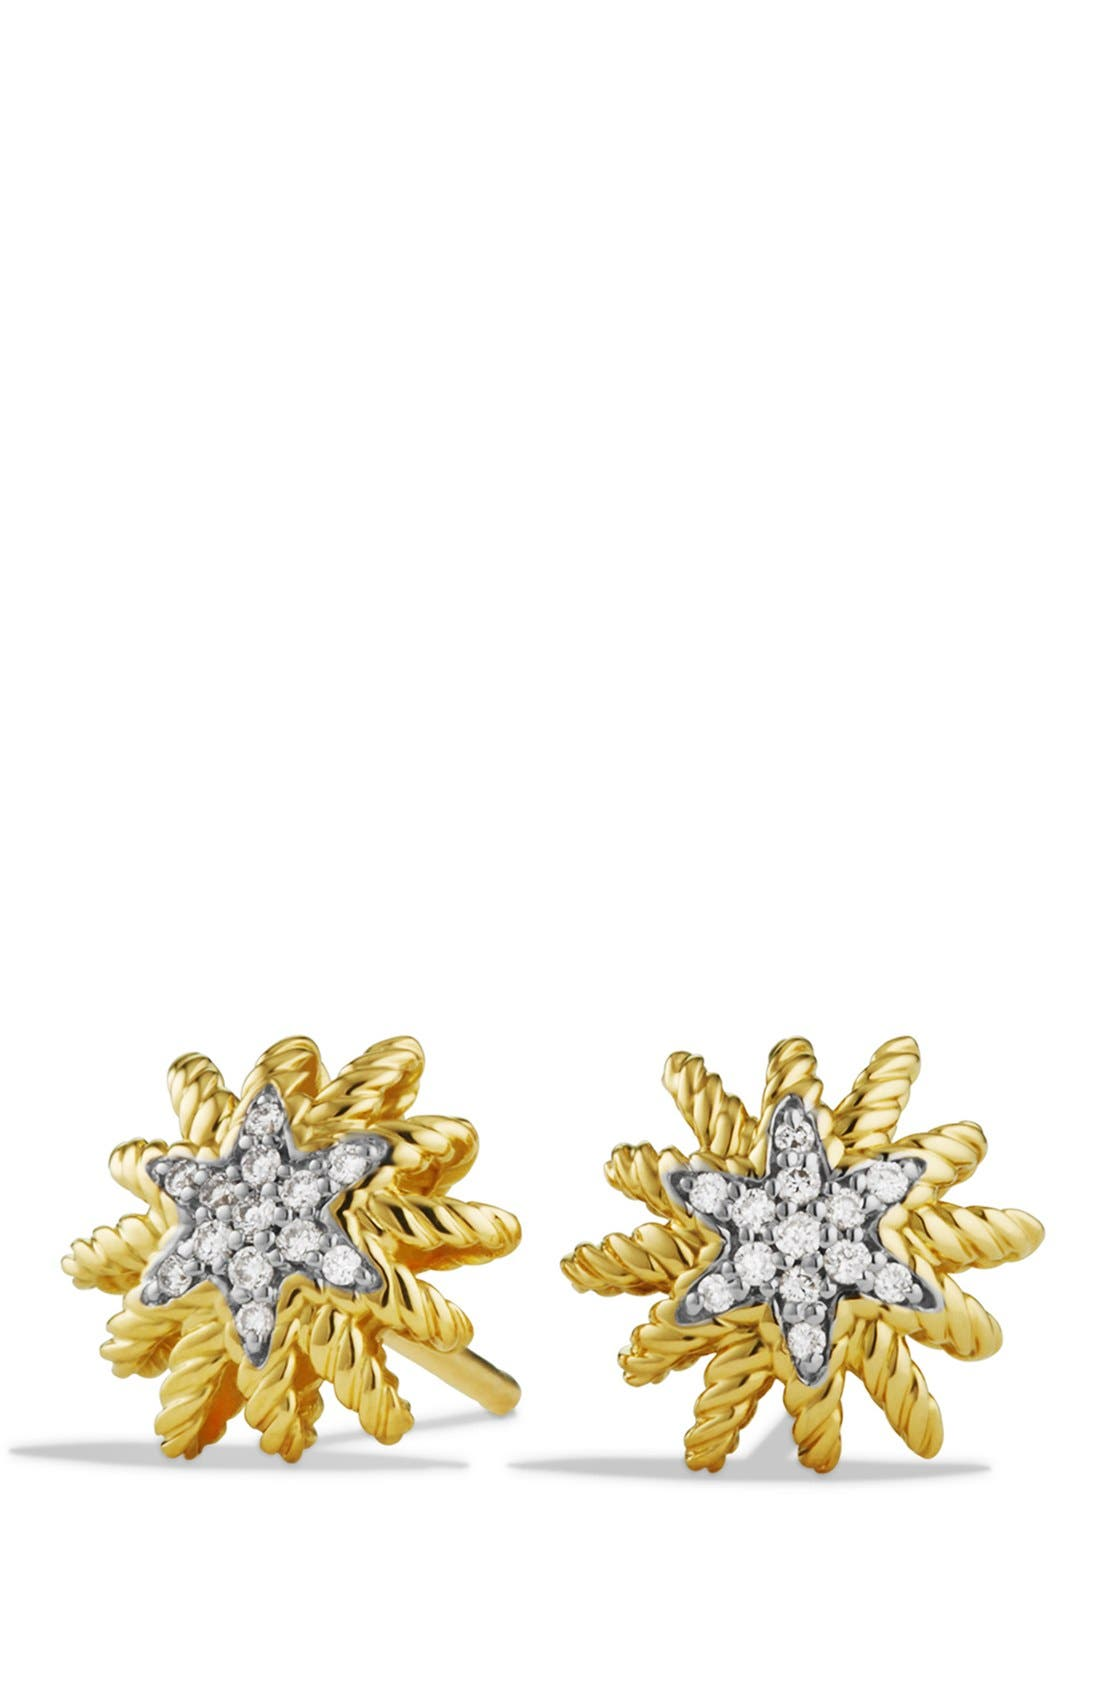 Main Image - David Yurman 'Starburst' Mini Earrings with Diamonds in Gold